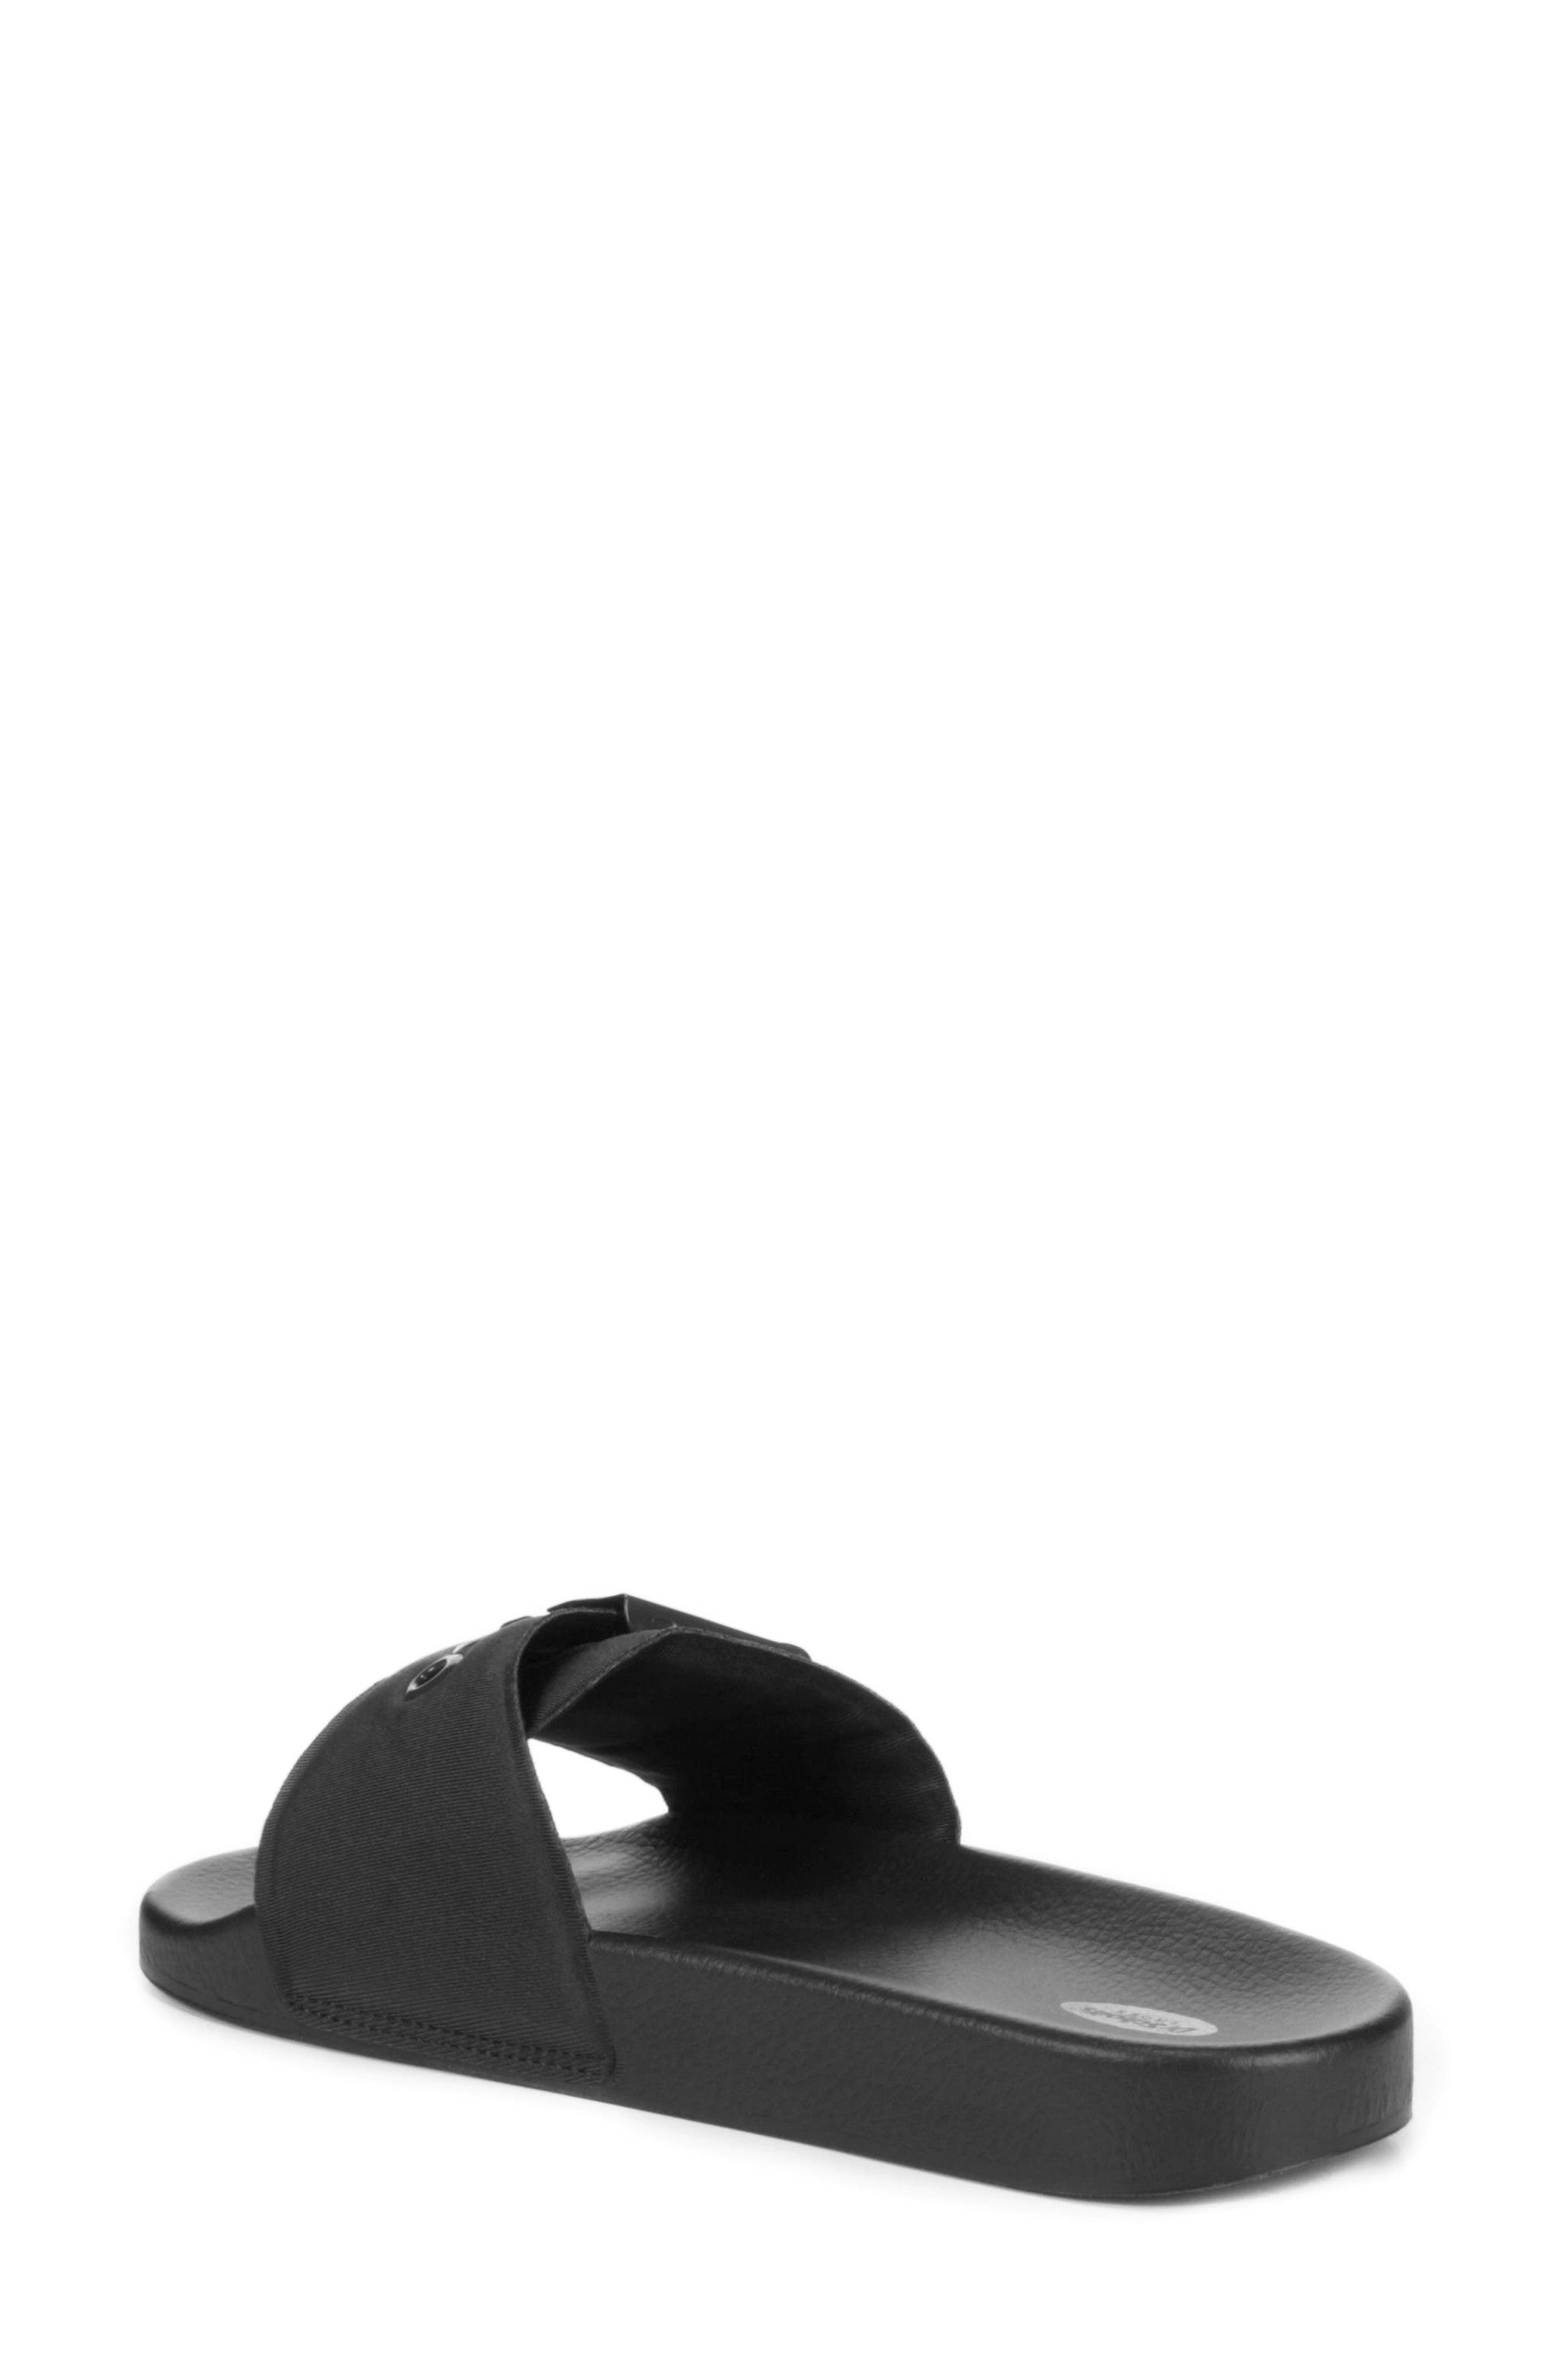 Original Pool Slide Sandal,                             Alternate thumbnail 2, color,                             BLACK